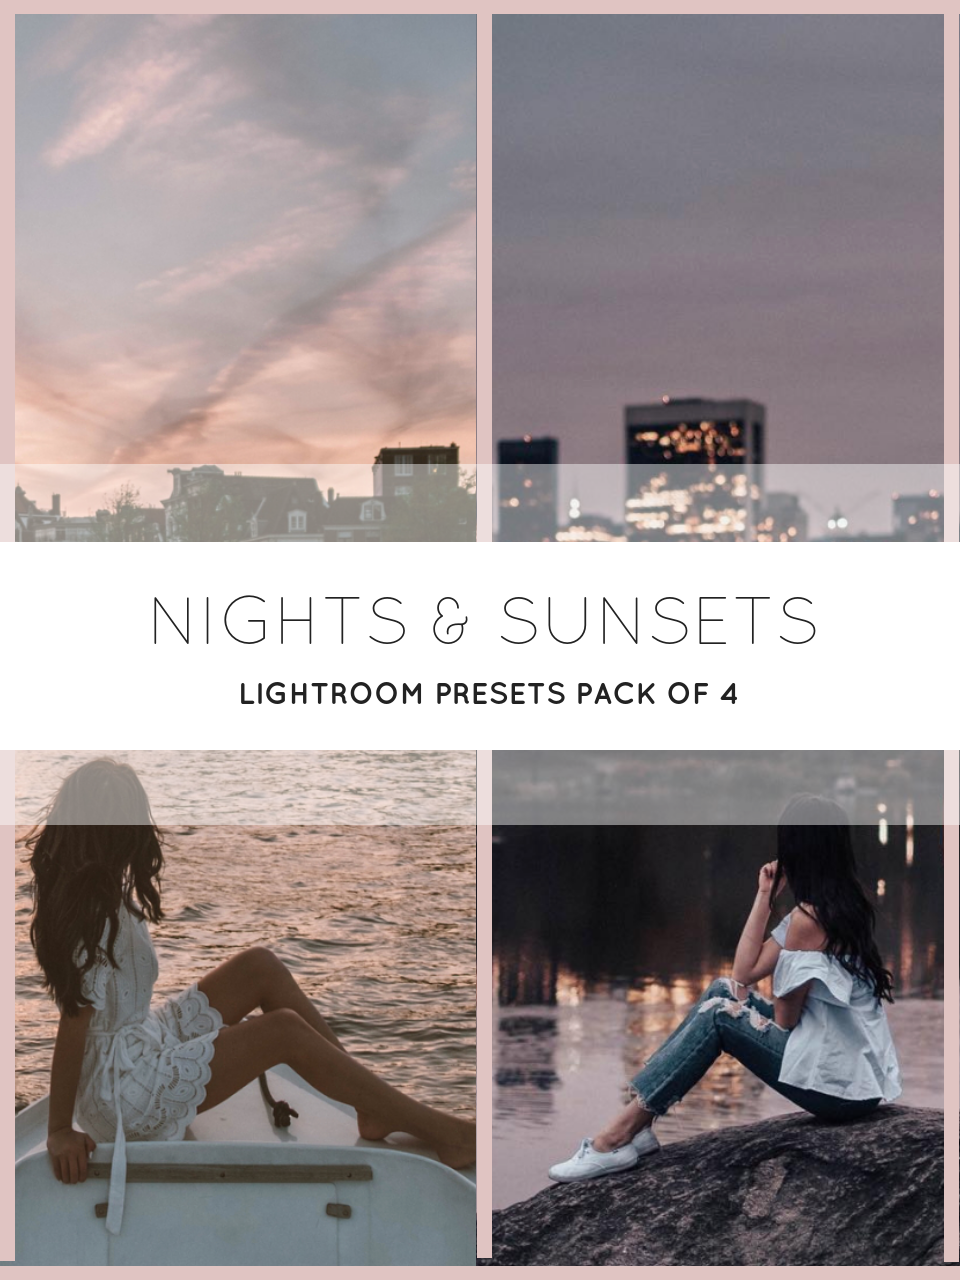 sunsets and nighttime (3)